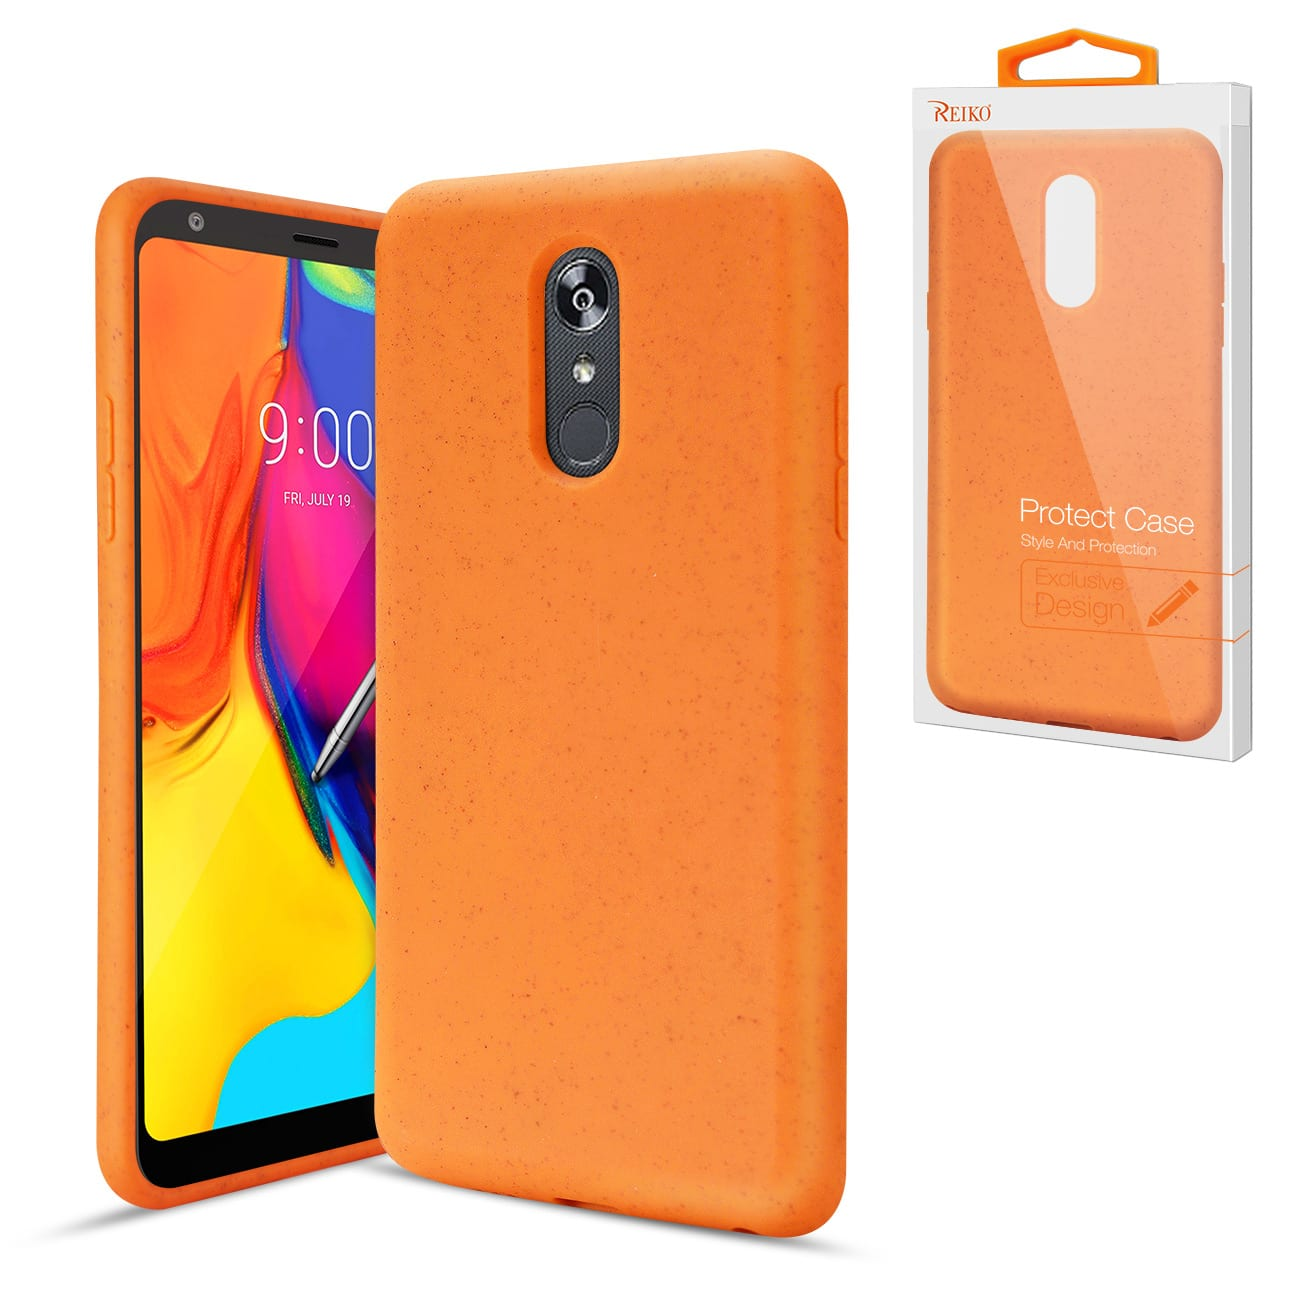 ISTIK LG STYLO 5 Wheat Bran Material Silicone Phone Case In Orange